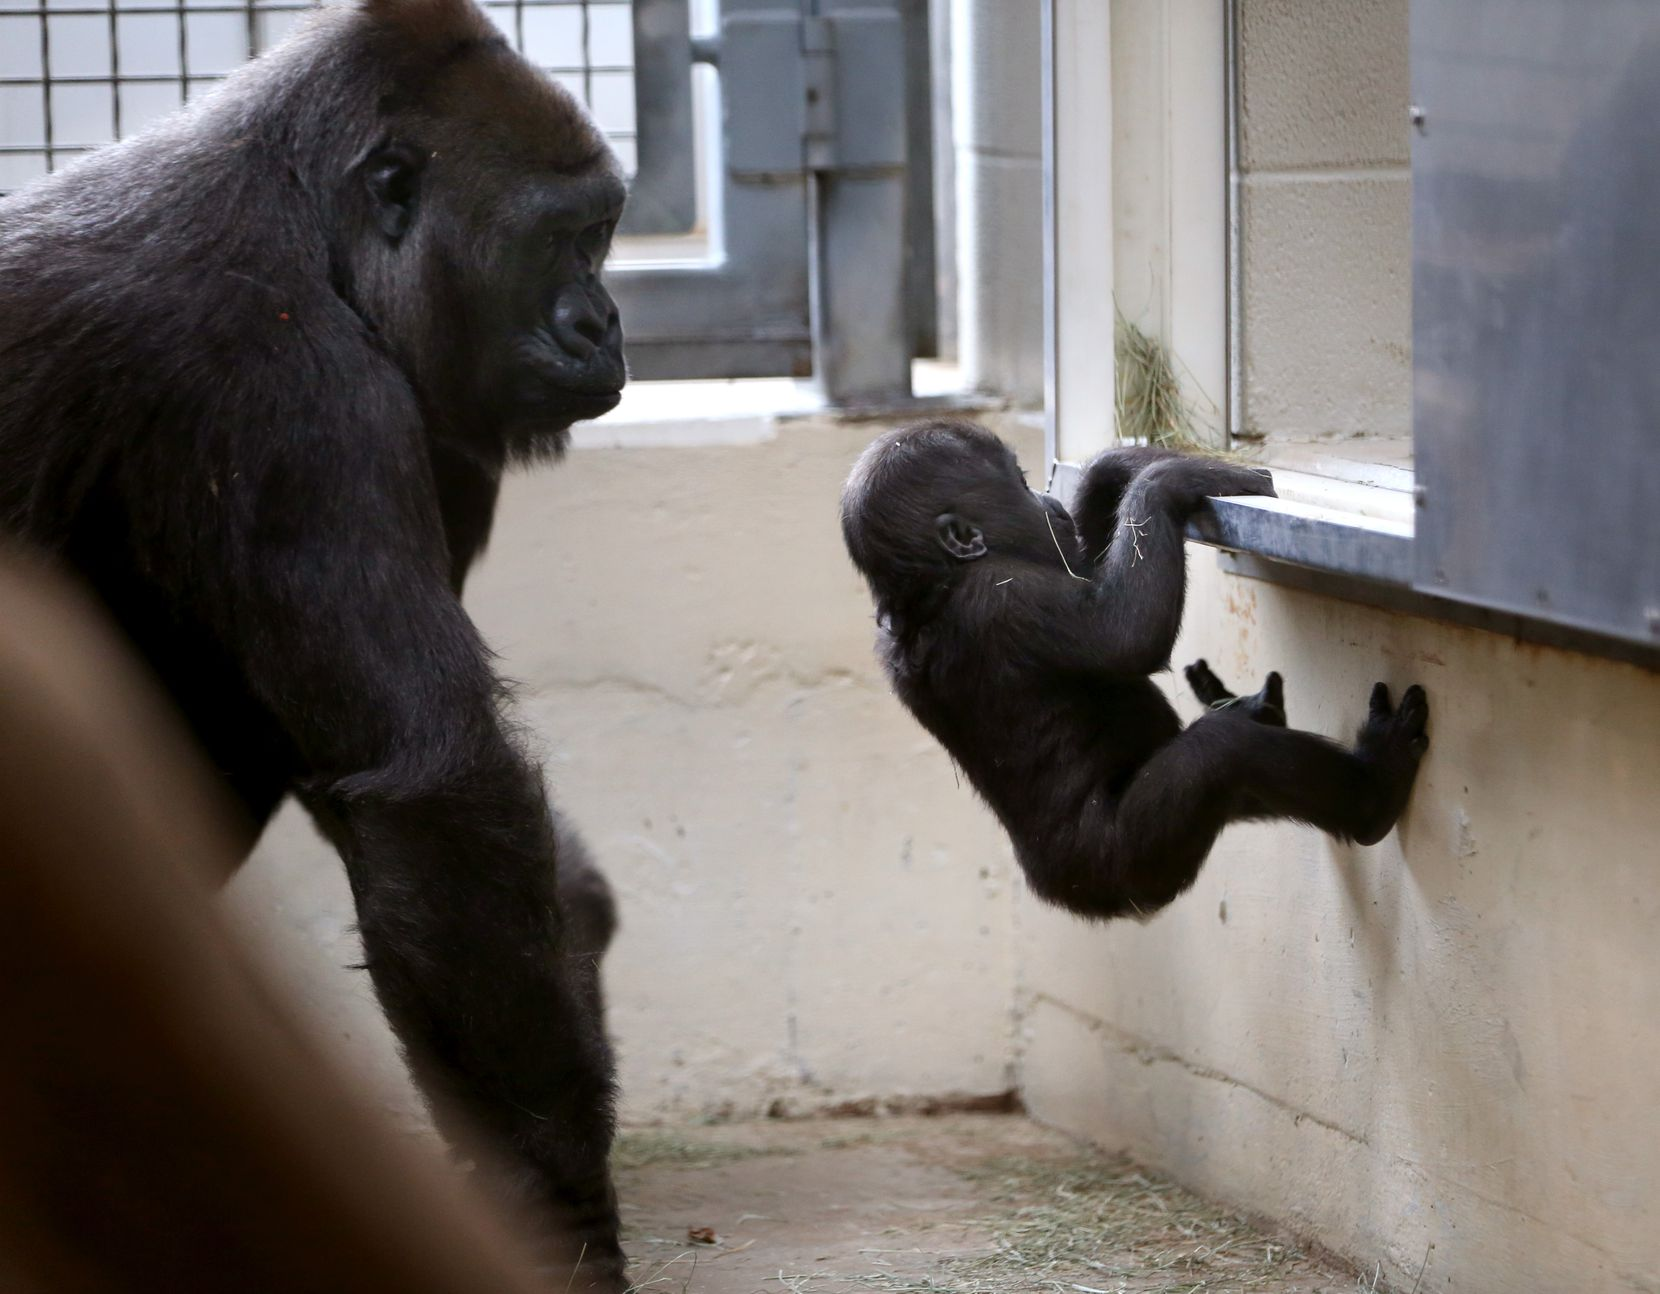 Hope, a western lowland gorilla, watches her daughter Saambili climb in a heated behind-the-scenes gorilla building at the Dallas Zoo.